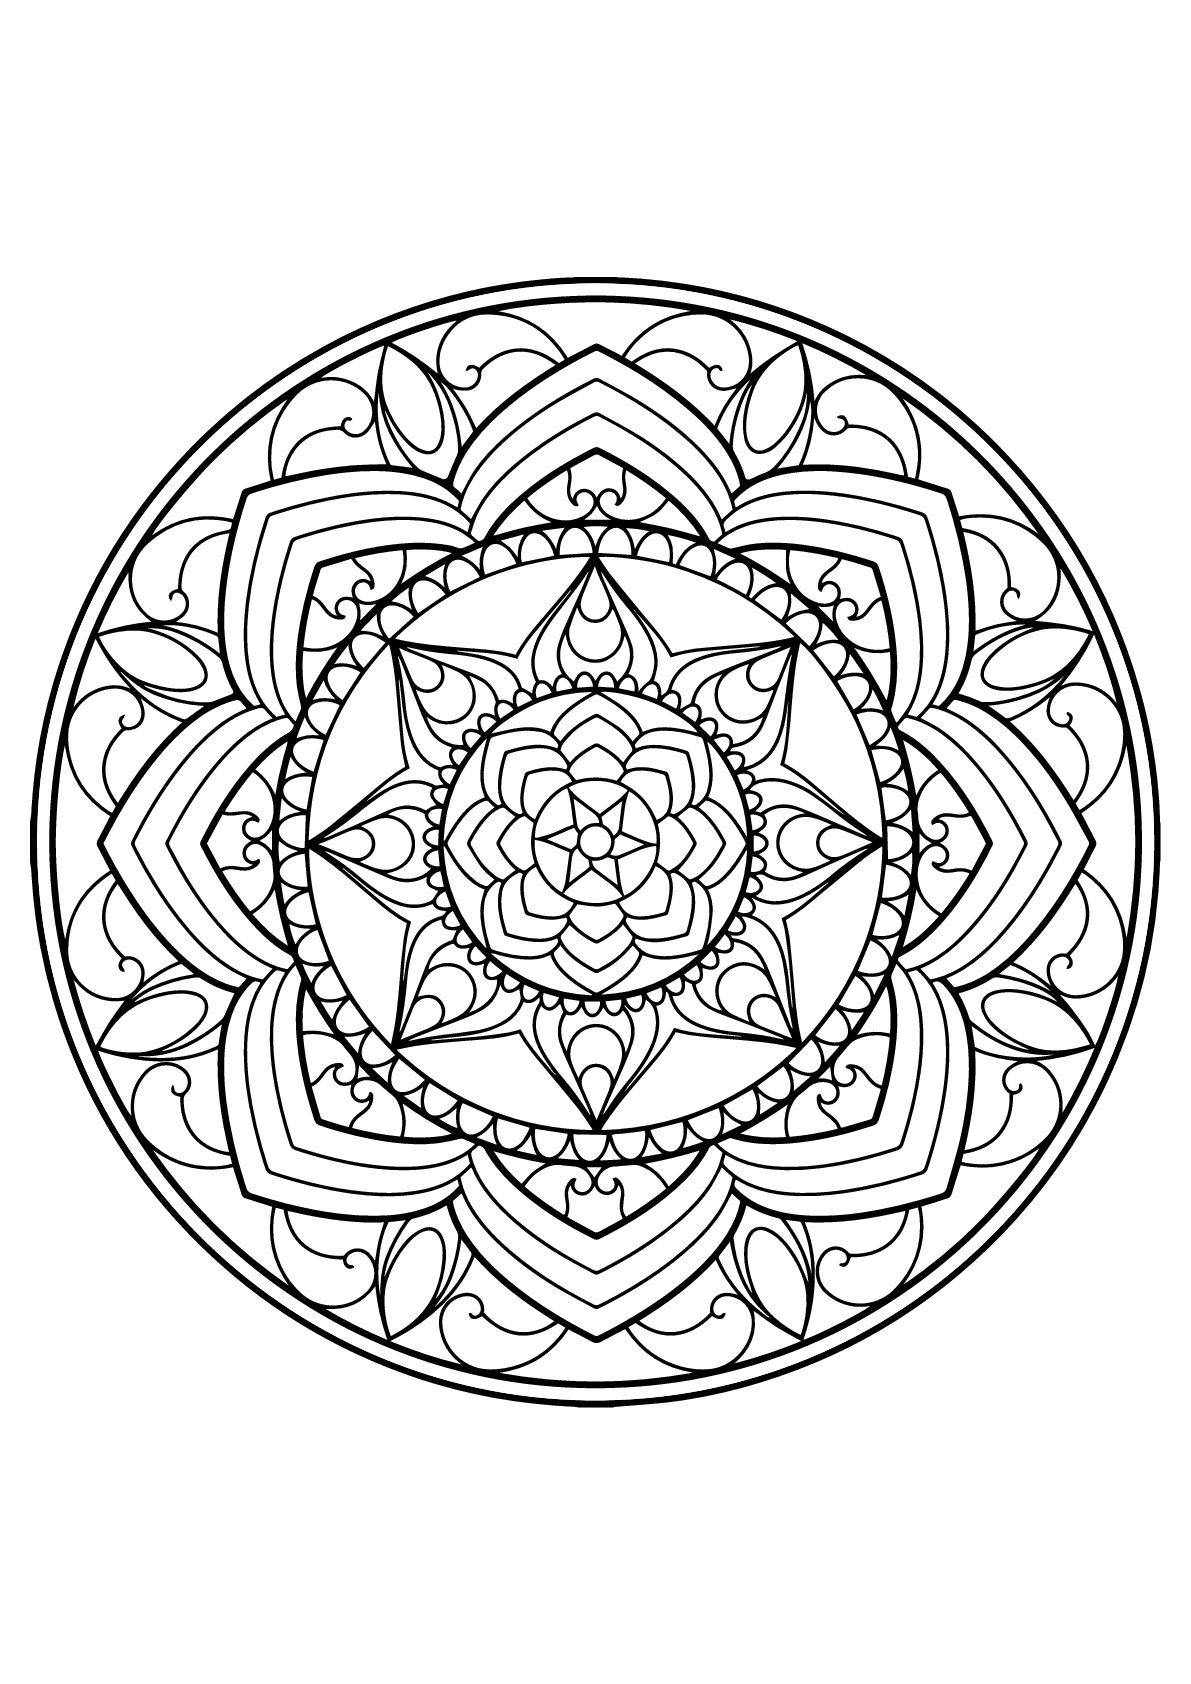 Mandala From Free Coloring Books For Adults 13 Mandalas Coloring